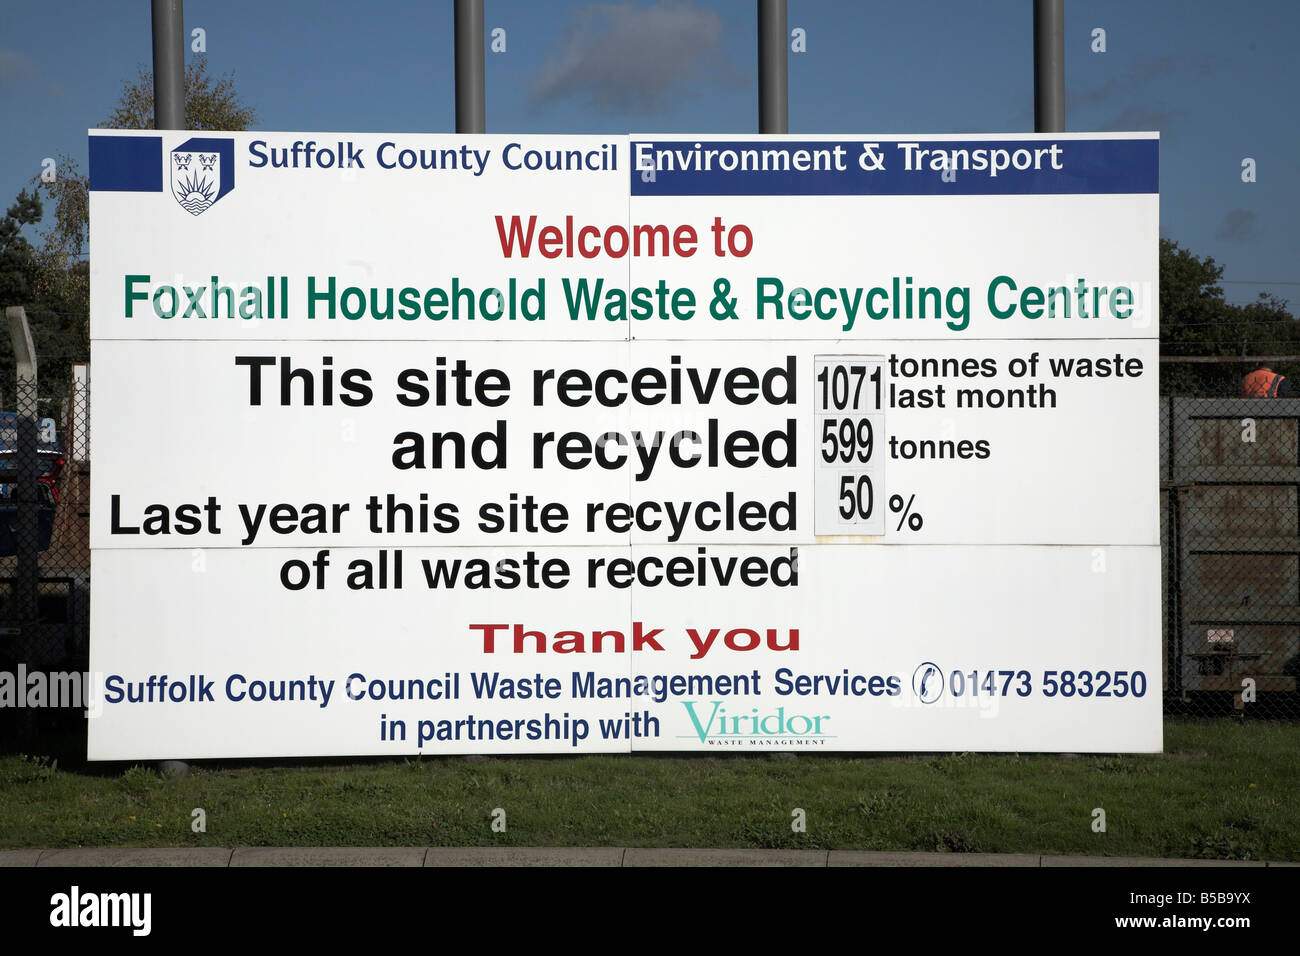 Household waste and recycling centre Foxhall near Ipswich Suffolk England - Stock Image